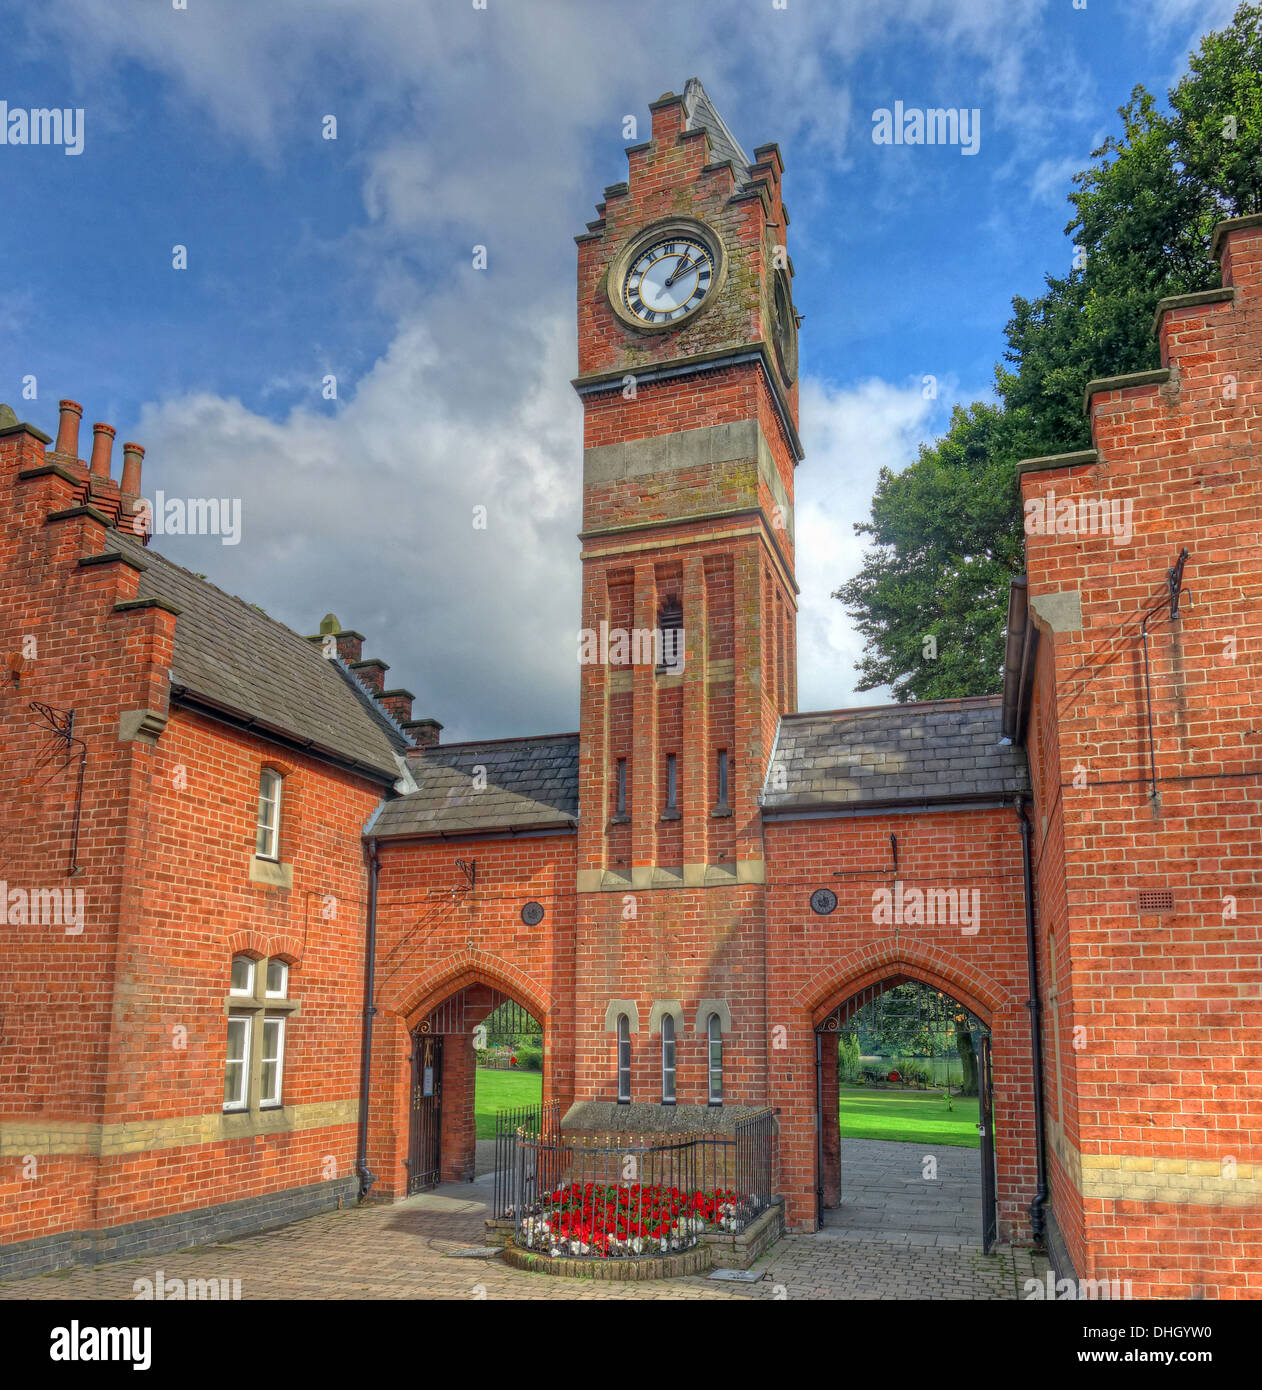 West,Midlands,England,UK,famous,clock,tower,clocks,timepiece,time,piece,gate,entrance,port,portal,red,brick,flowers,summer,best,loved,parks,saddlers,saddler,things,to,see,in,tourist,tourism,attraction,lodge,fine,old,victorian,building,gotonysmith,buildings,flanking,bays,contain,gates,below,a,depressed,gothic,arch,and,slate,saddle-back,roof,linking,to,two,storey,bays,below,a,stepped,gable,with,stone,dressed,tripartite,windows.,Chimney,stacks,are,at,the,extremities,with,that,on,the,right,showing,its,original,crenellated,pot.,Low,single,storey,end,bays,stand,below,slate,saddlebacks,with,stepped,gable,ends,and,double,lancets,stone,dressed,Black,Country,Buy Pictures of,Buy Images Of,Black Country,Walsall Black Country